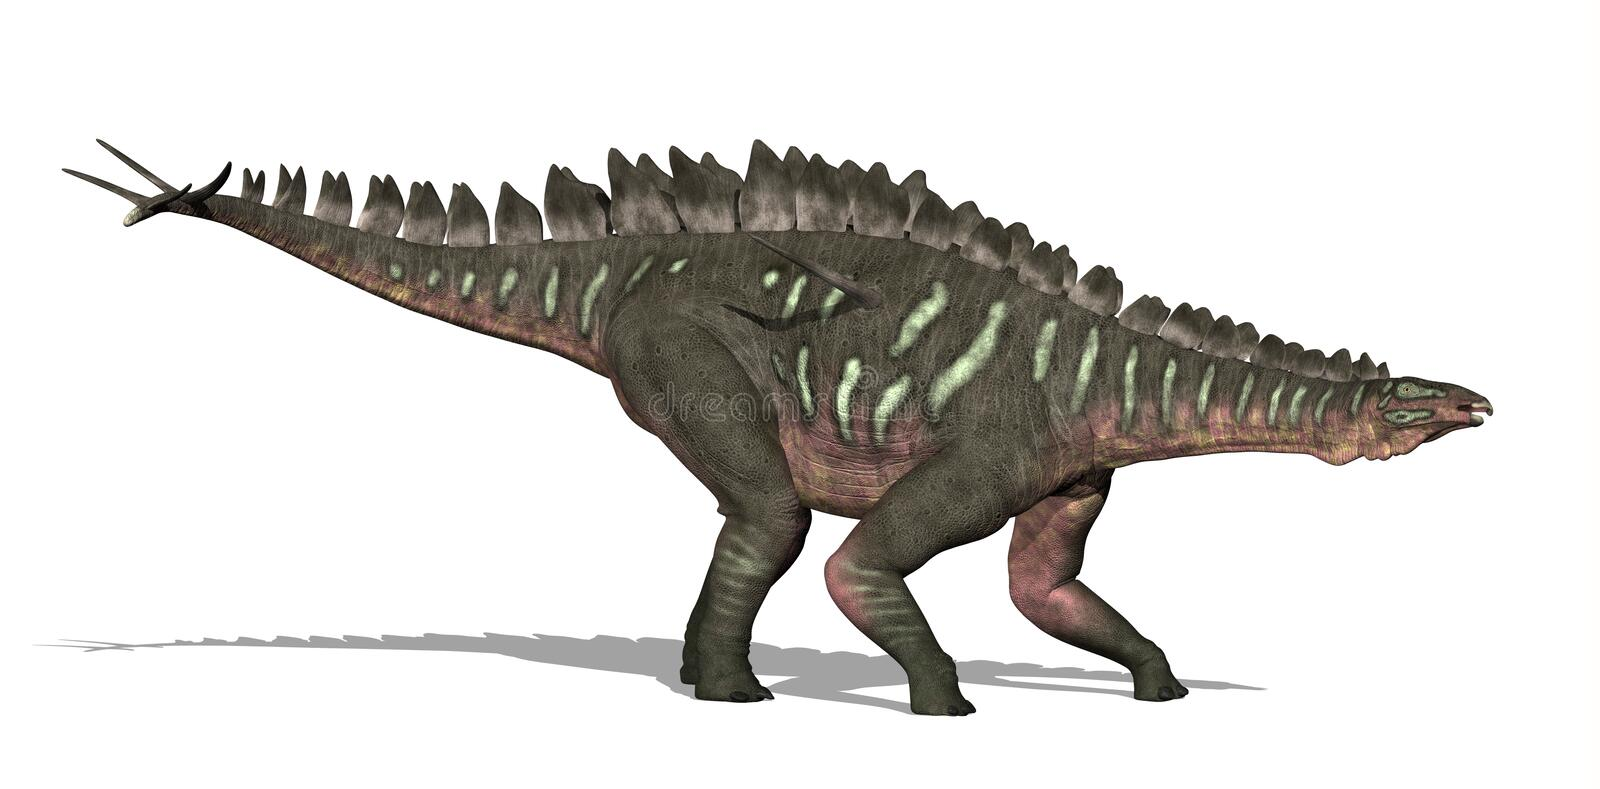 Miragaia Dinosaur. The Miragaia dinosaur lived in what is now Portugal, during the Upper Jurassic Period - 3D render vector illustration